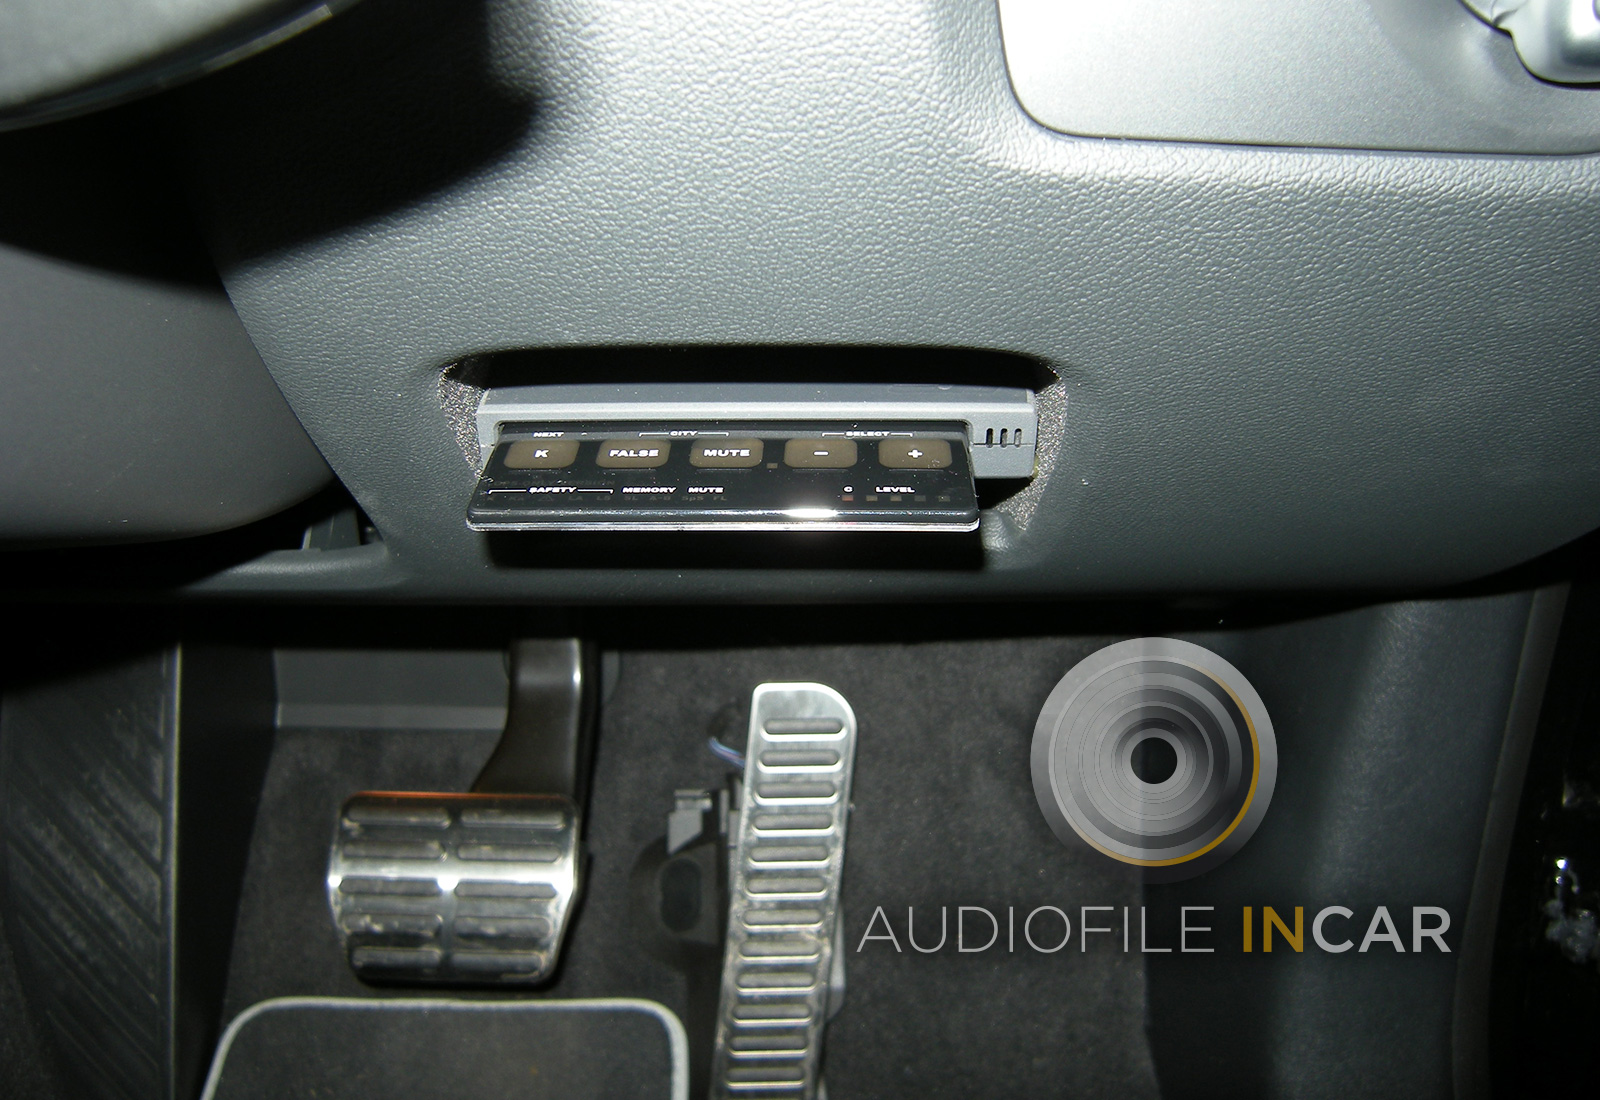 This is a Stinger Card GPS fitted in the driver's side pocket of the new Audi RS3